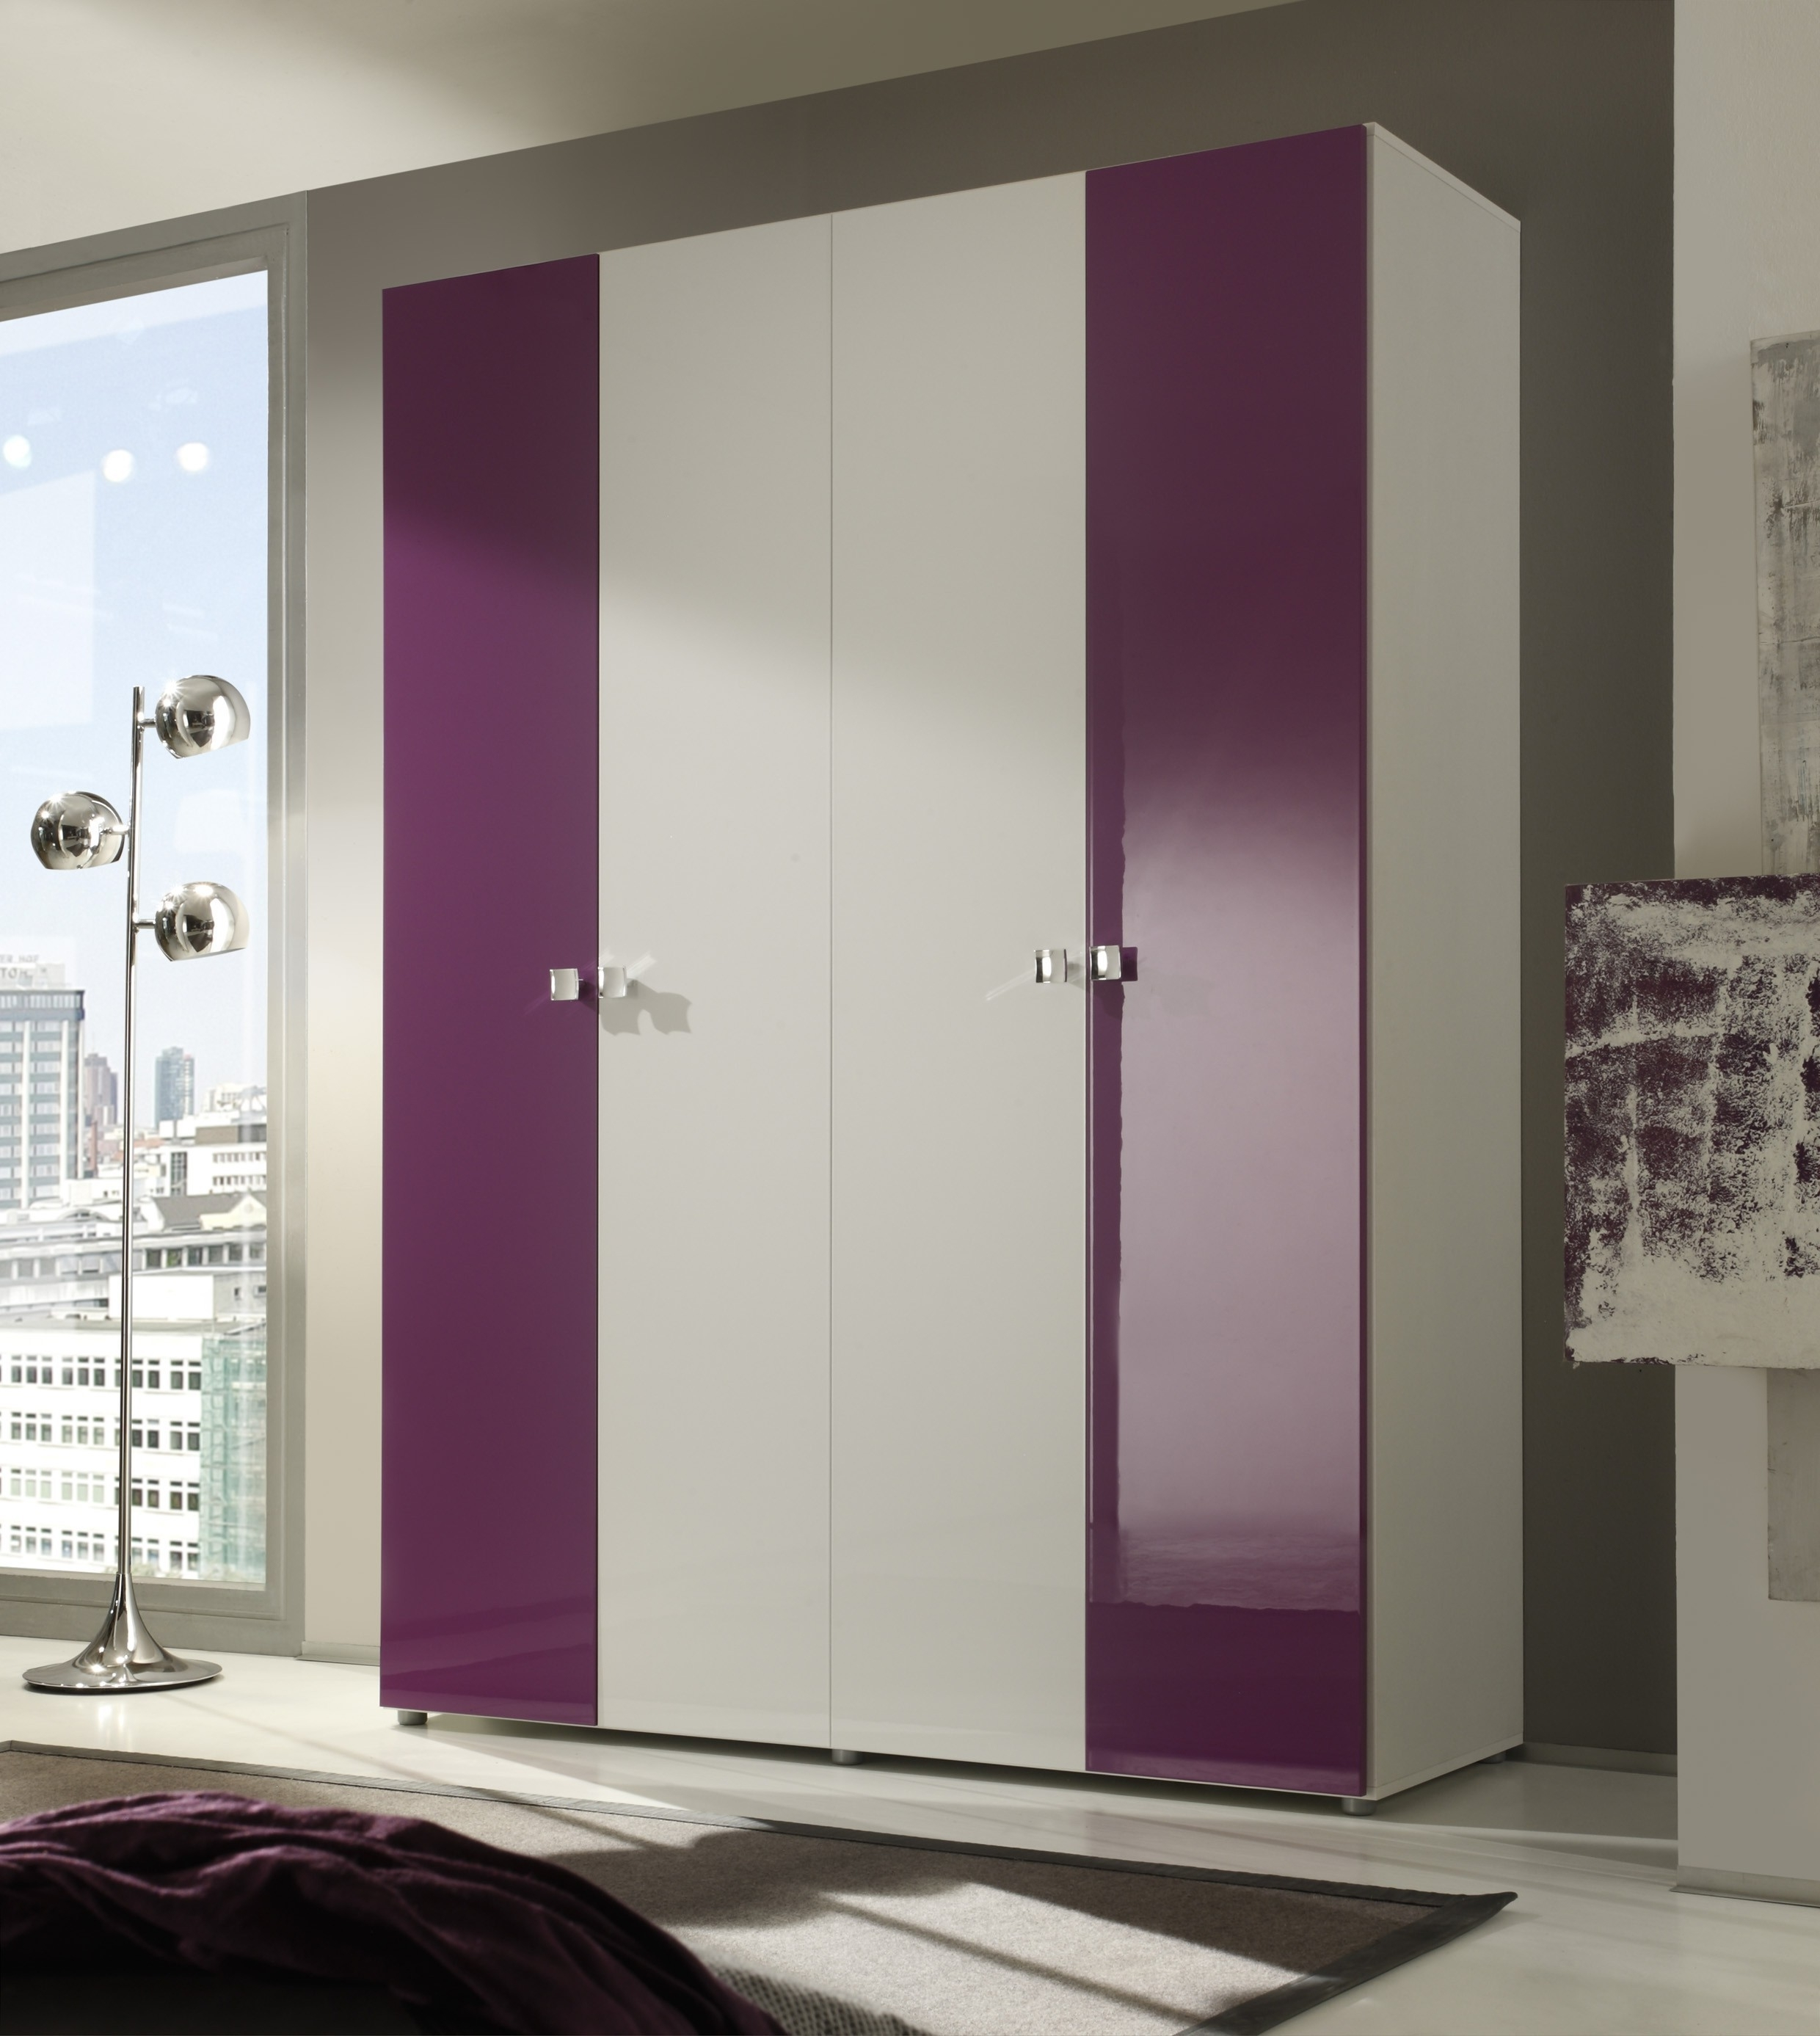 Well Liked 4 Door Wardrobes Intended For Smart 4 Door Wardrobe Buy Online At Best Price – Sohomod (View 14 of 15)